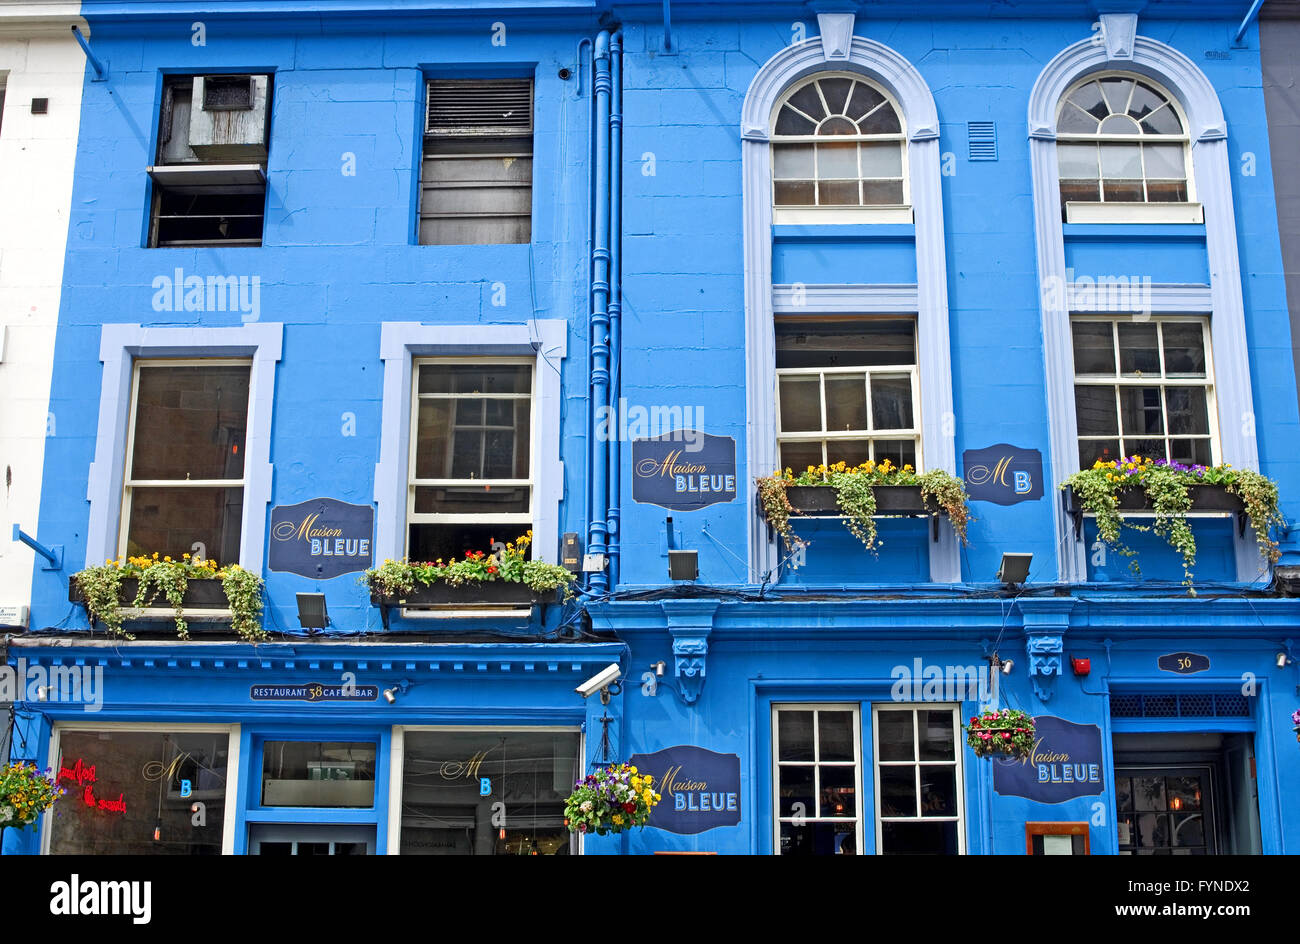 Close up of the frontage of the maison bleue restaurant and cafe stock photo royalty free - Maison bleue mobel ...